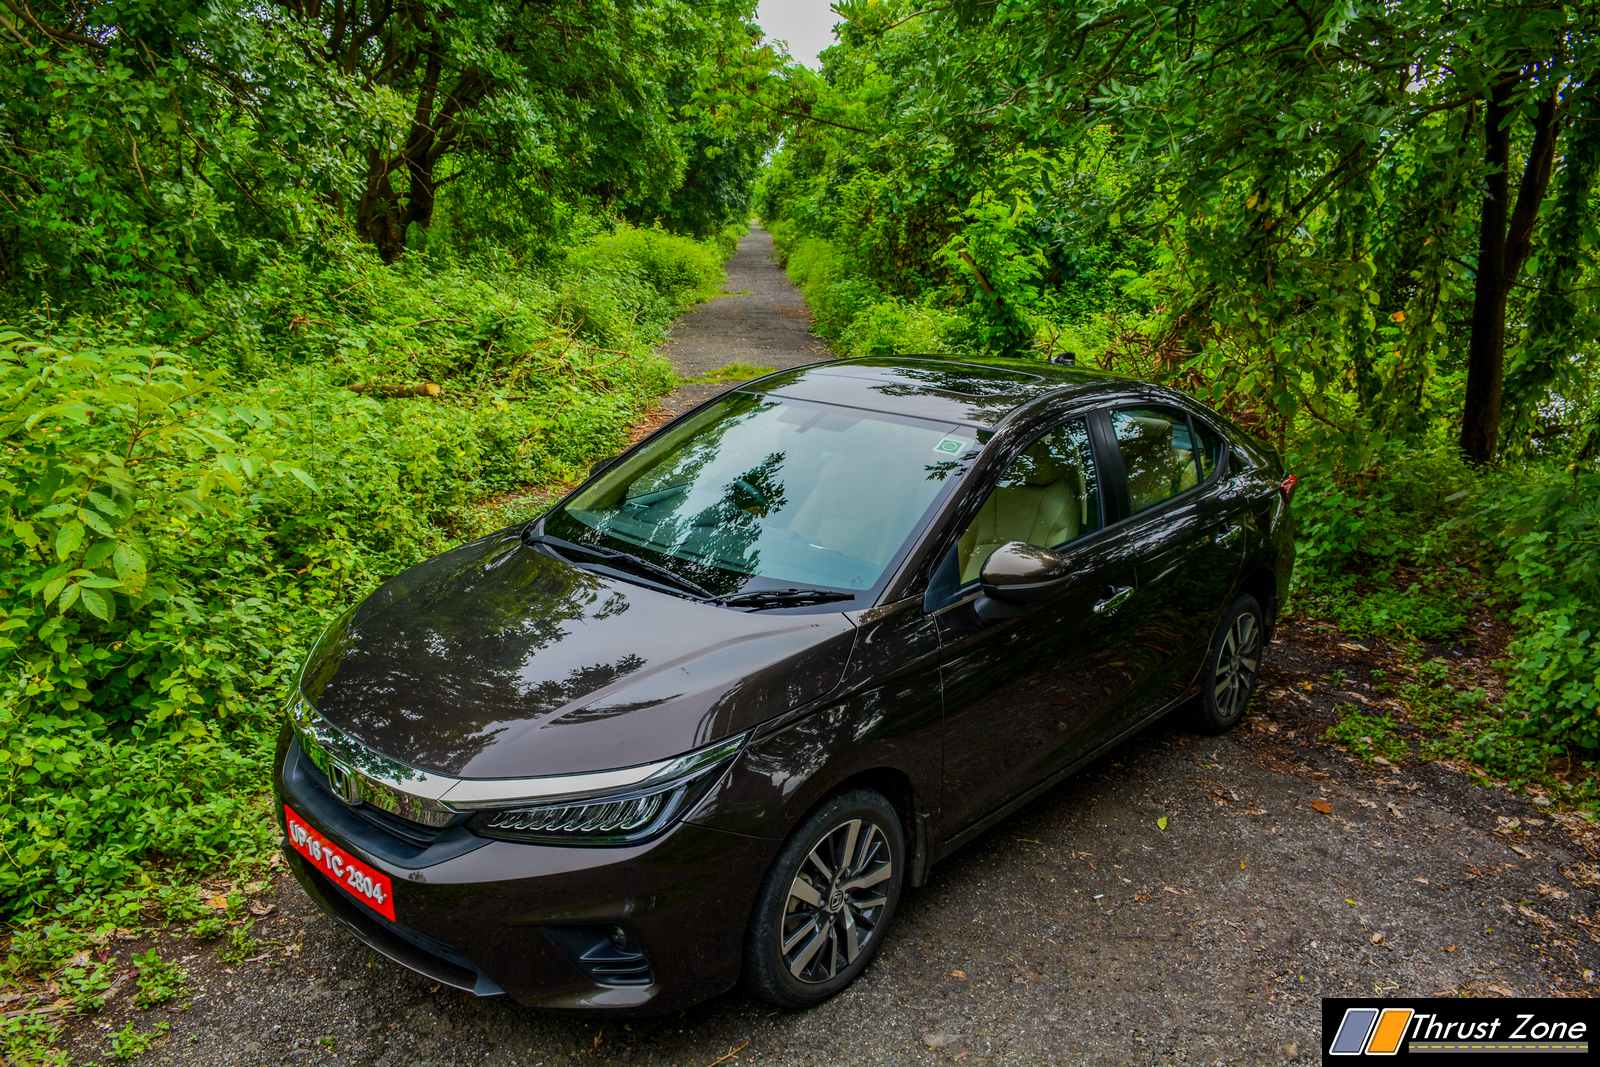 2020-Honda-City-Road-Test-Review-17